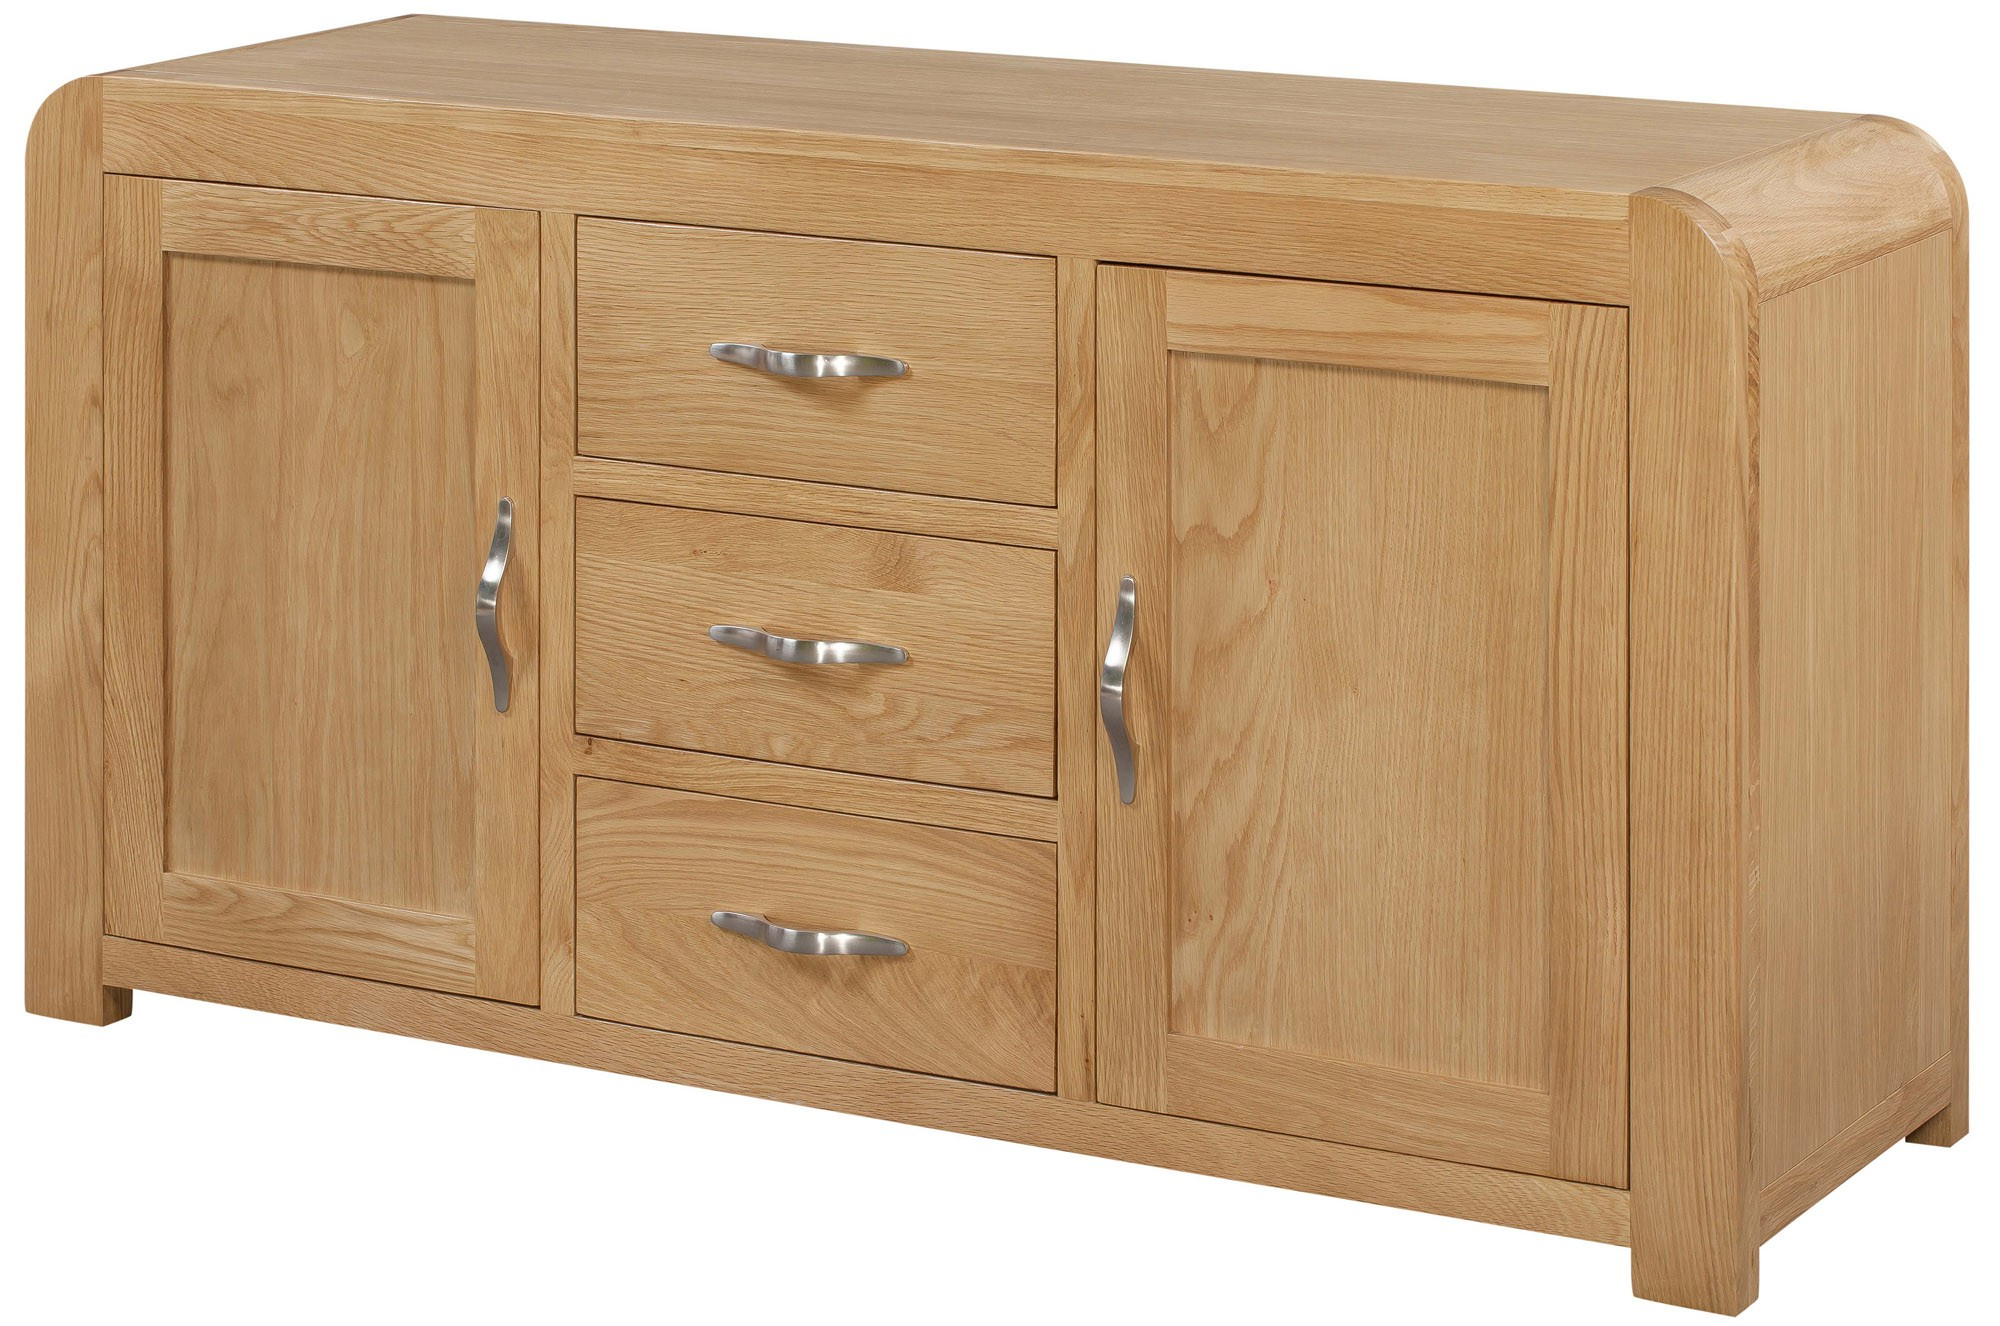 Famous Venice Sideboard With 2 Doors & 3 Drawers – Venice Oak Range – Shop Intended For Antique White Distressed 3 Drawer/2 Door Sideboards (View 4 of 20)